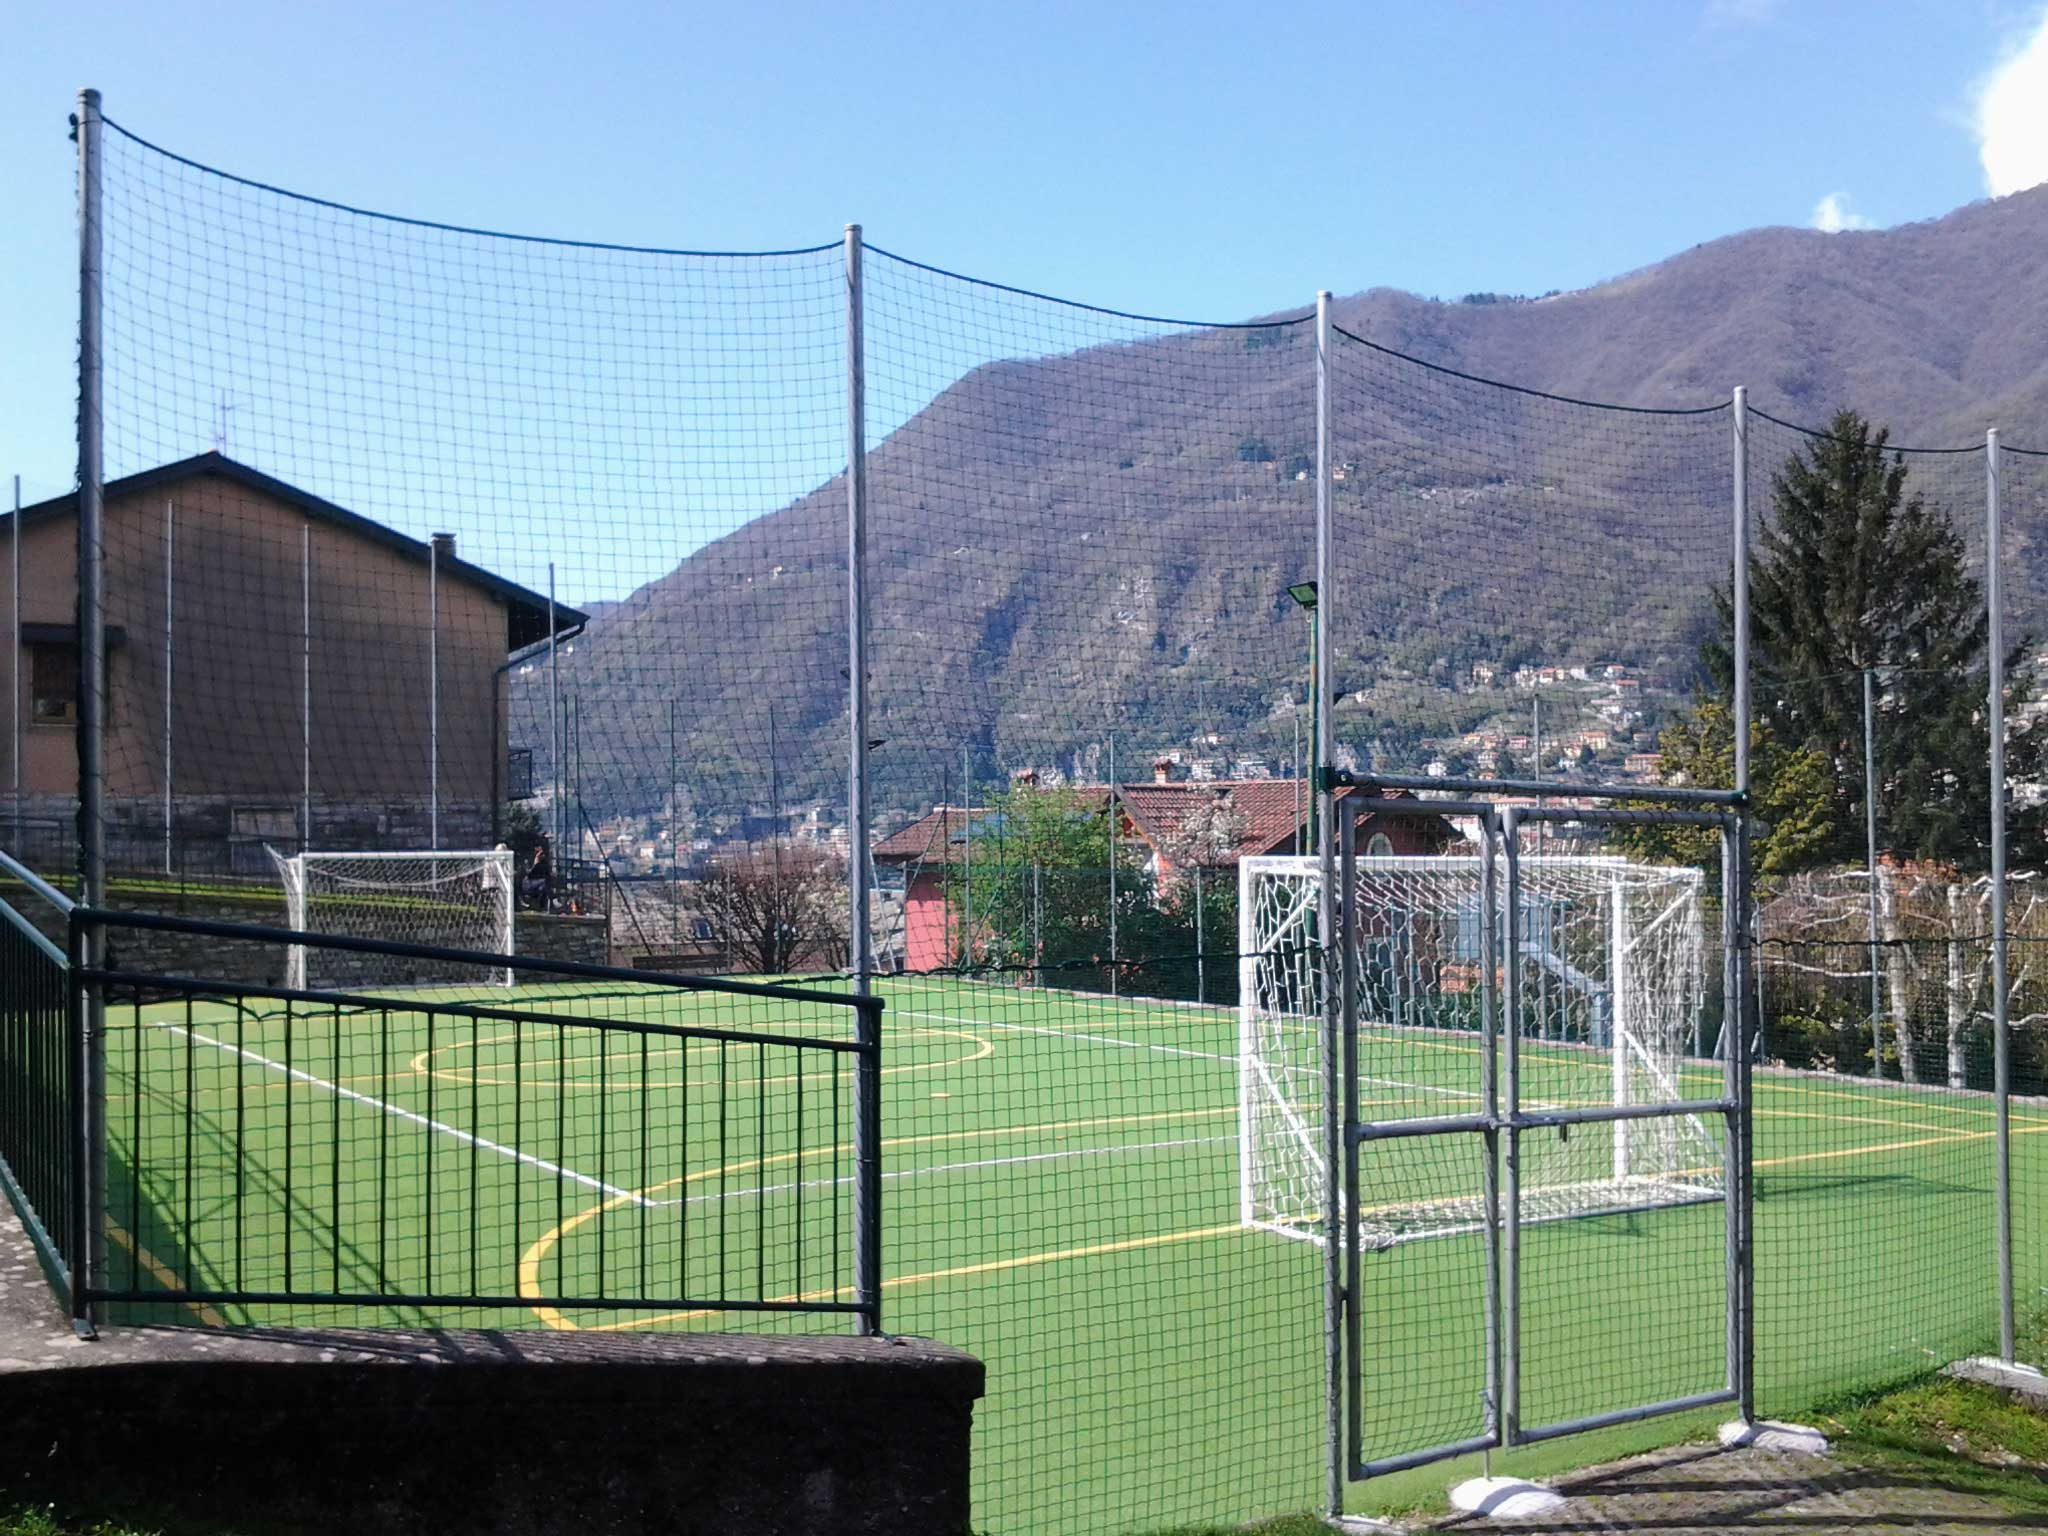 SOCCER FIELD FENCE synthetic grass – JOINT TORNO (CO)